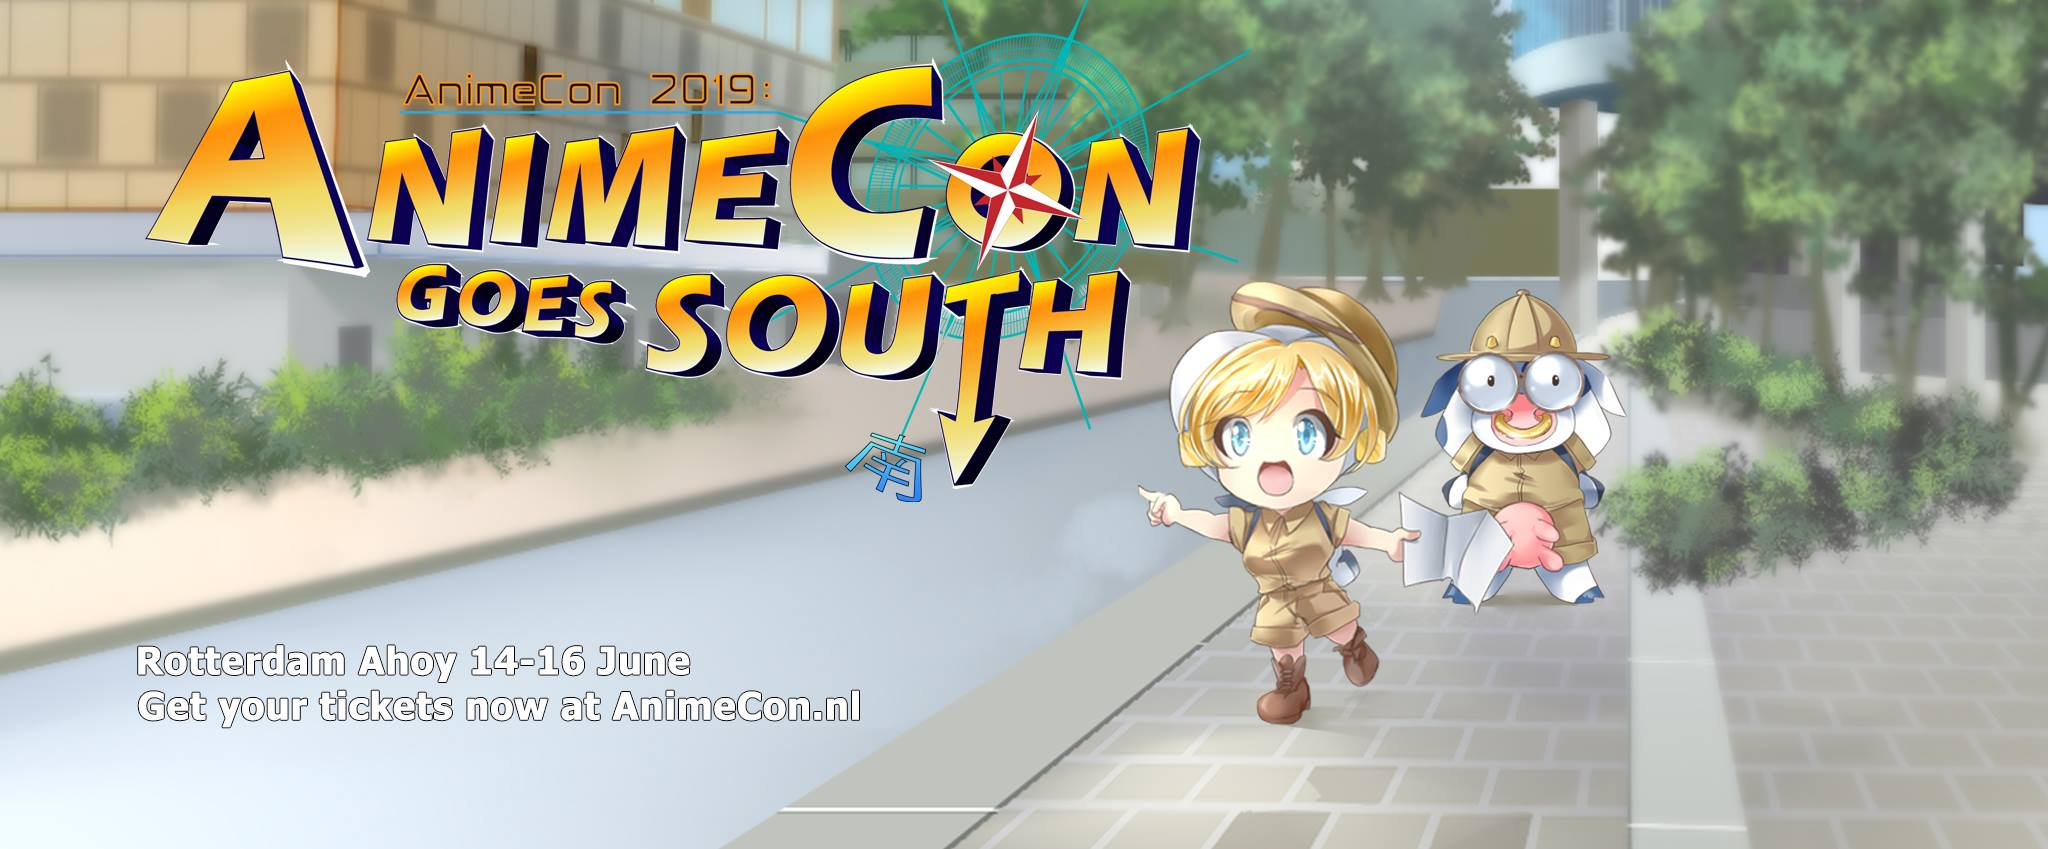 AnimeCon 2019: AnimeCon Goes South